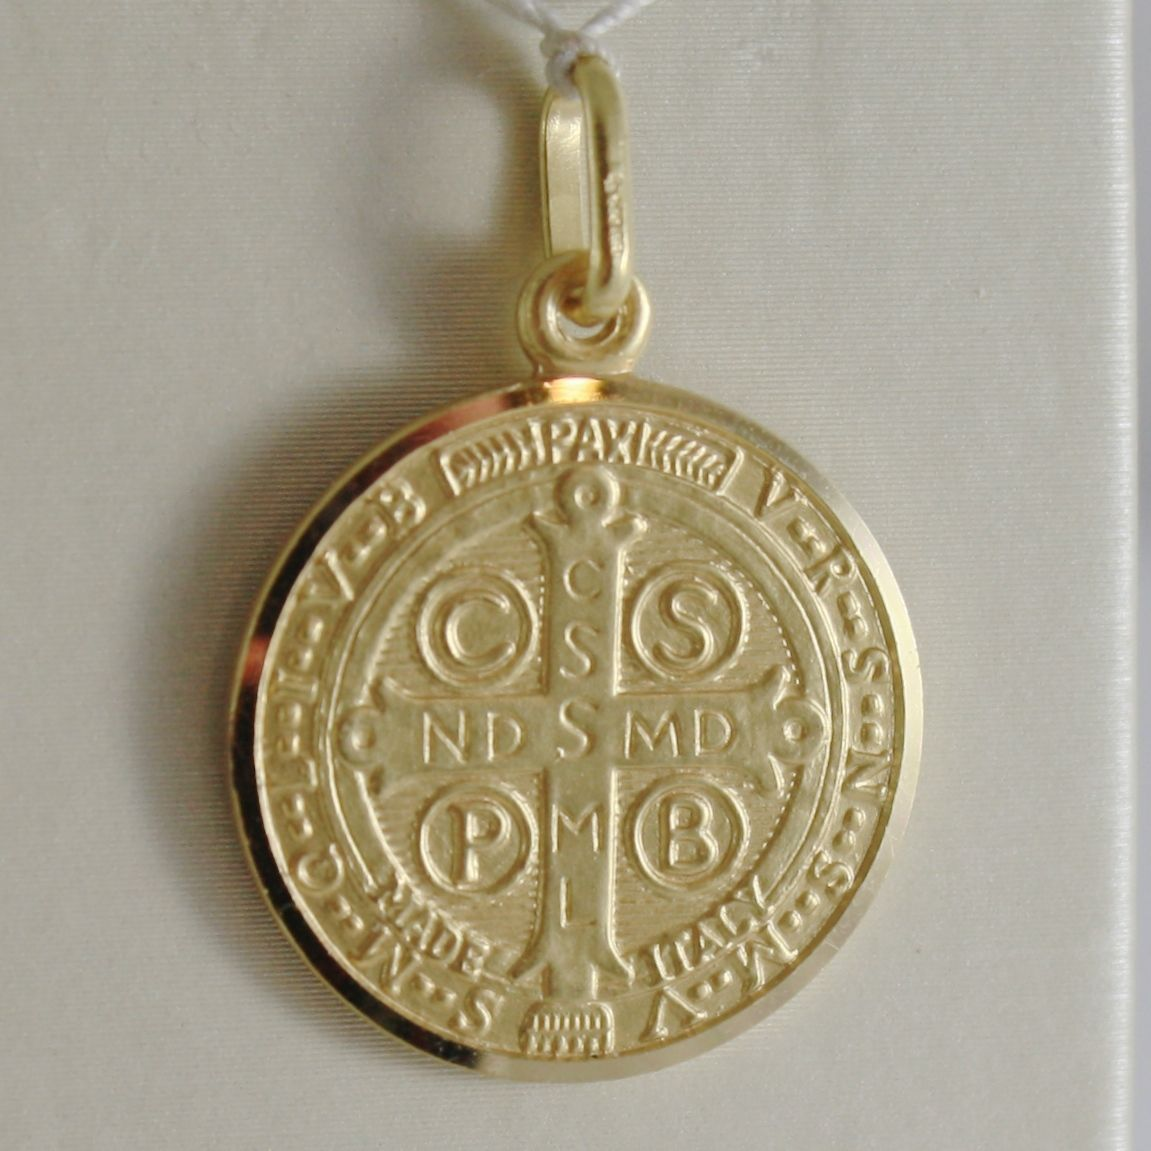 SOLID 18K YELLOW GOLD ST SAINT BENEDICT 19 MM MEDAL WITH CROSS, MADE IN ITALY